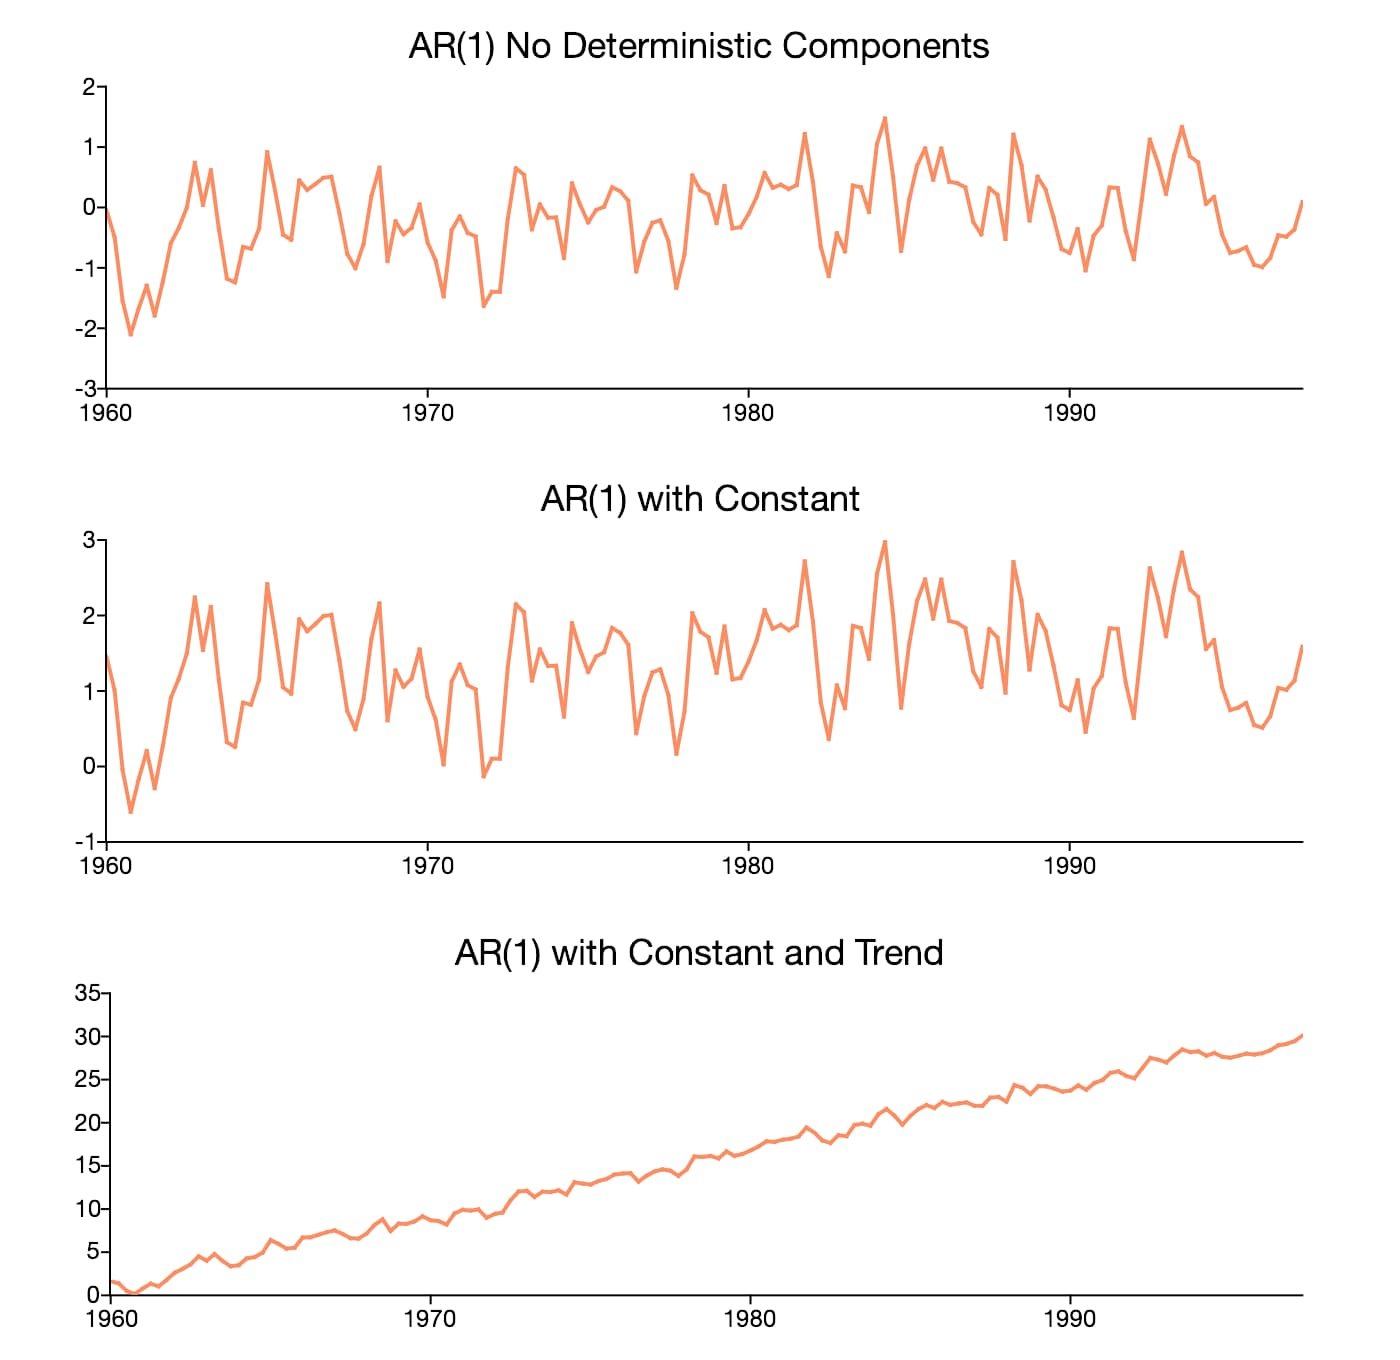 Graph of AR(1) time series with a constant, one with a constant and trend and one without any deterministic components.